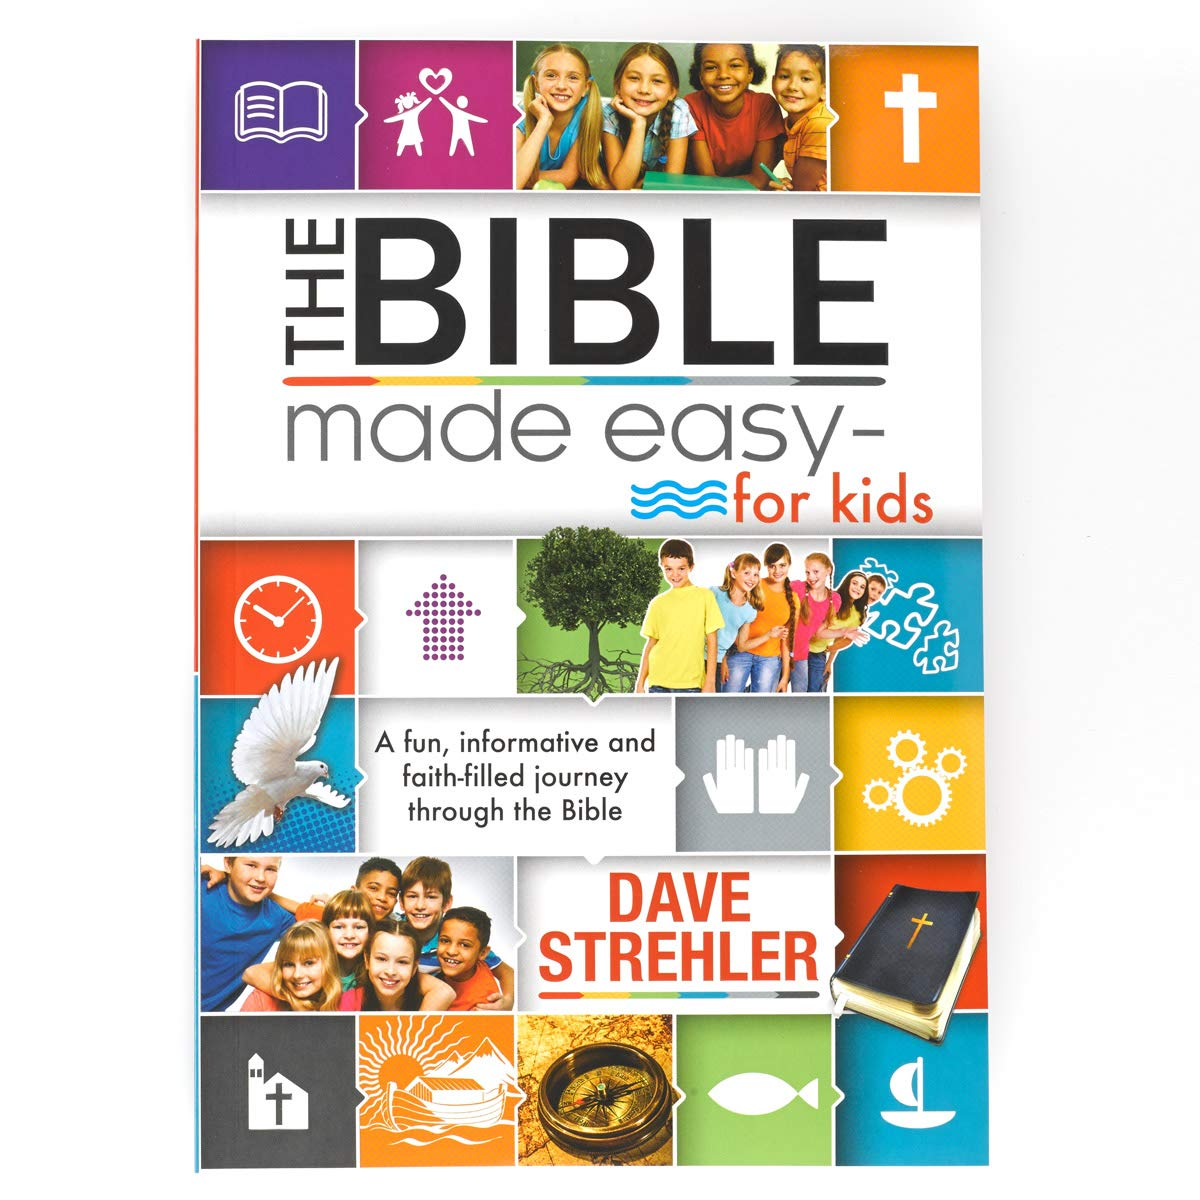 The Bible Made Easy - for Kids